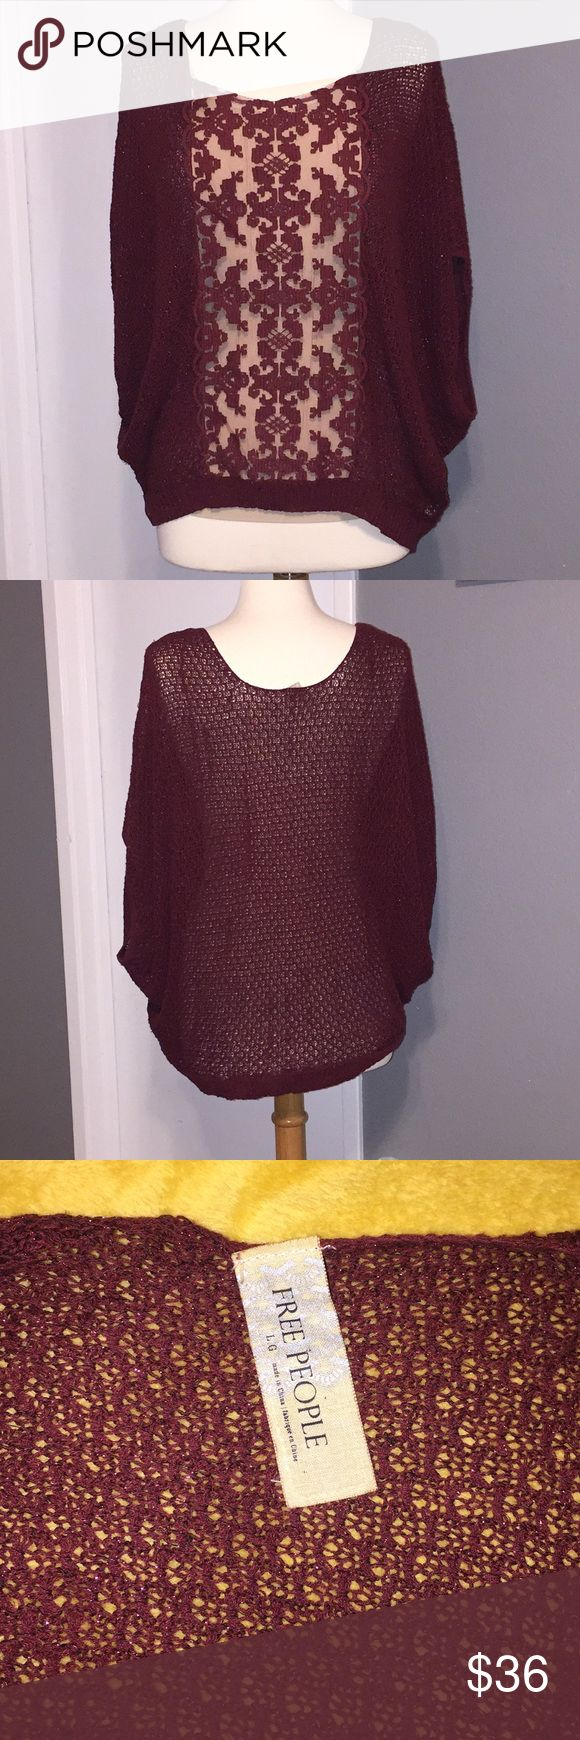 Oversized Free People maroon sweater with lace This oversized sweater has short sleeves and fun, flirty lace down the front. This piece is see through so a cami must be worn underneath it. Great with jeans or dress pants for a work outfit! Free People Sweaters Crew & Scoop Necks